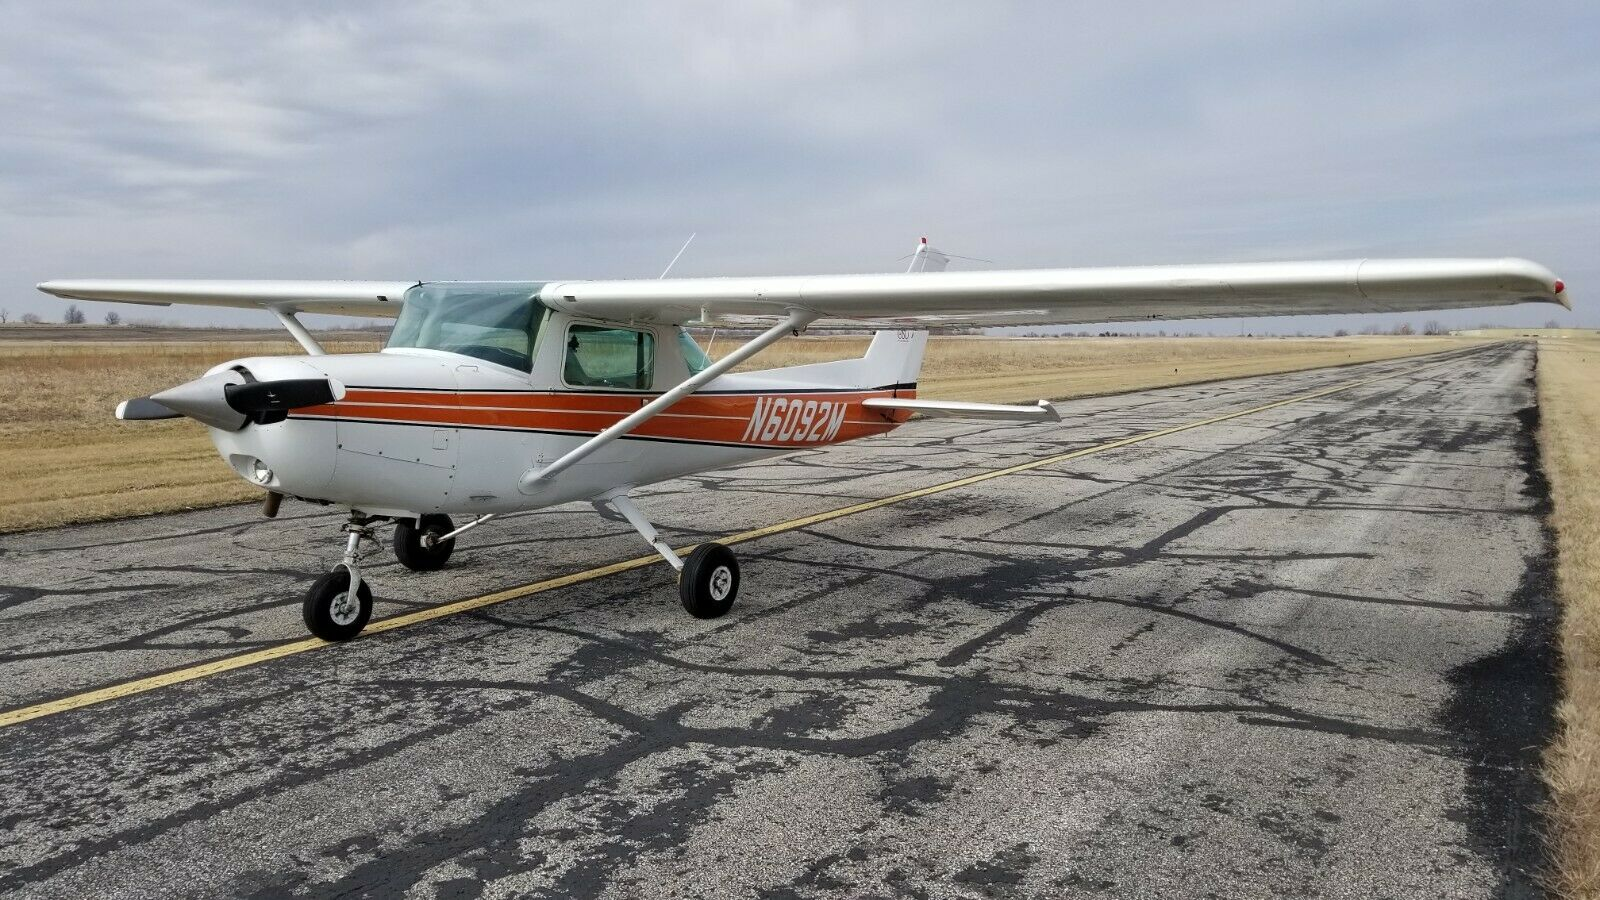 hangared 1981 Cessna aircraft for sale